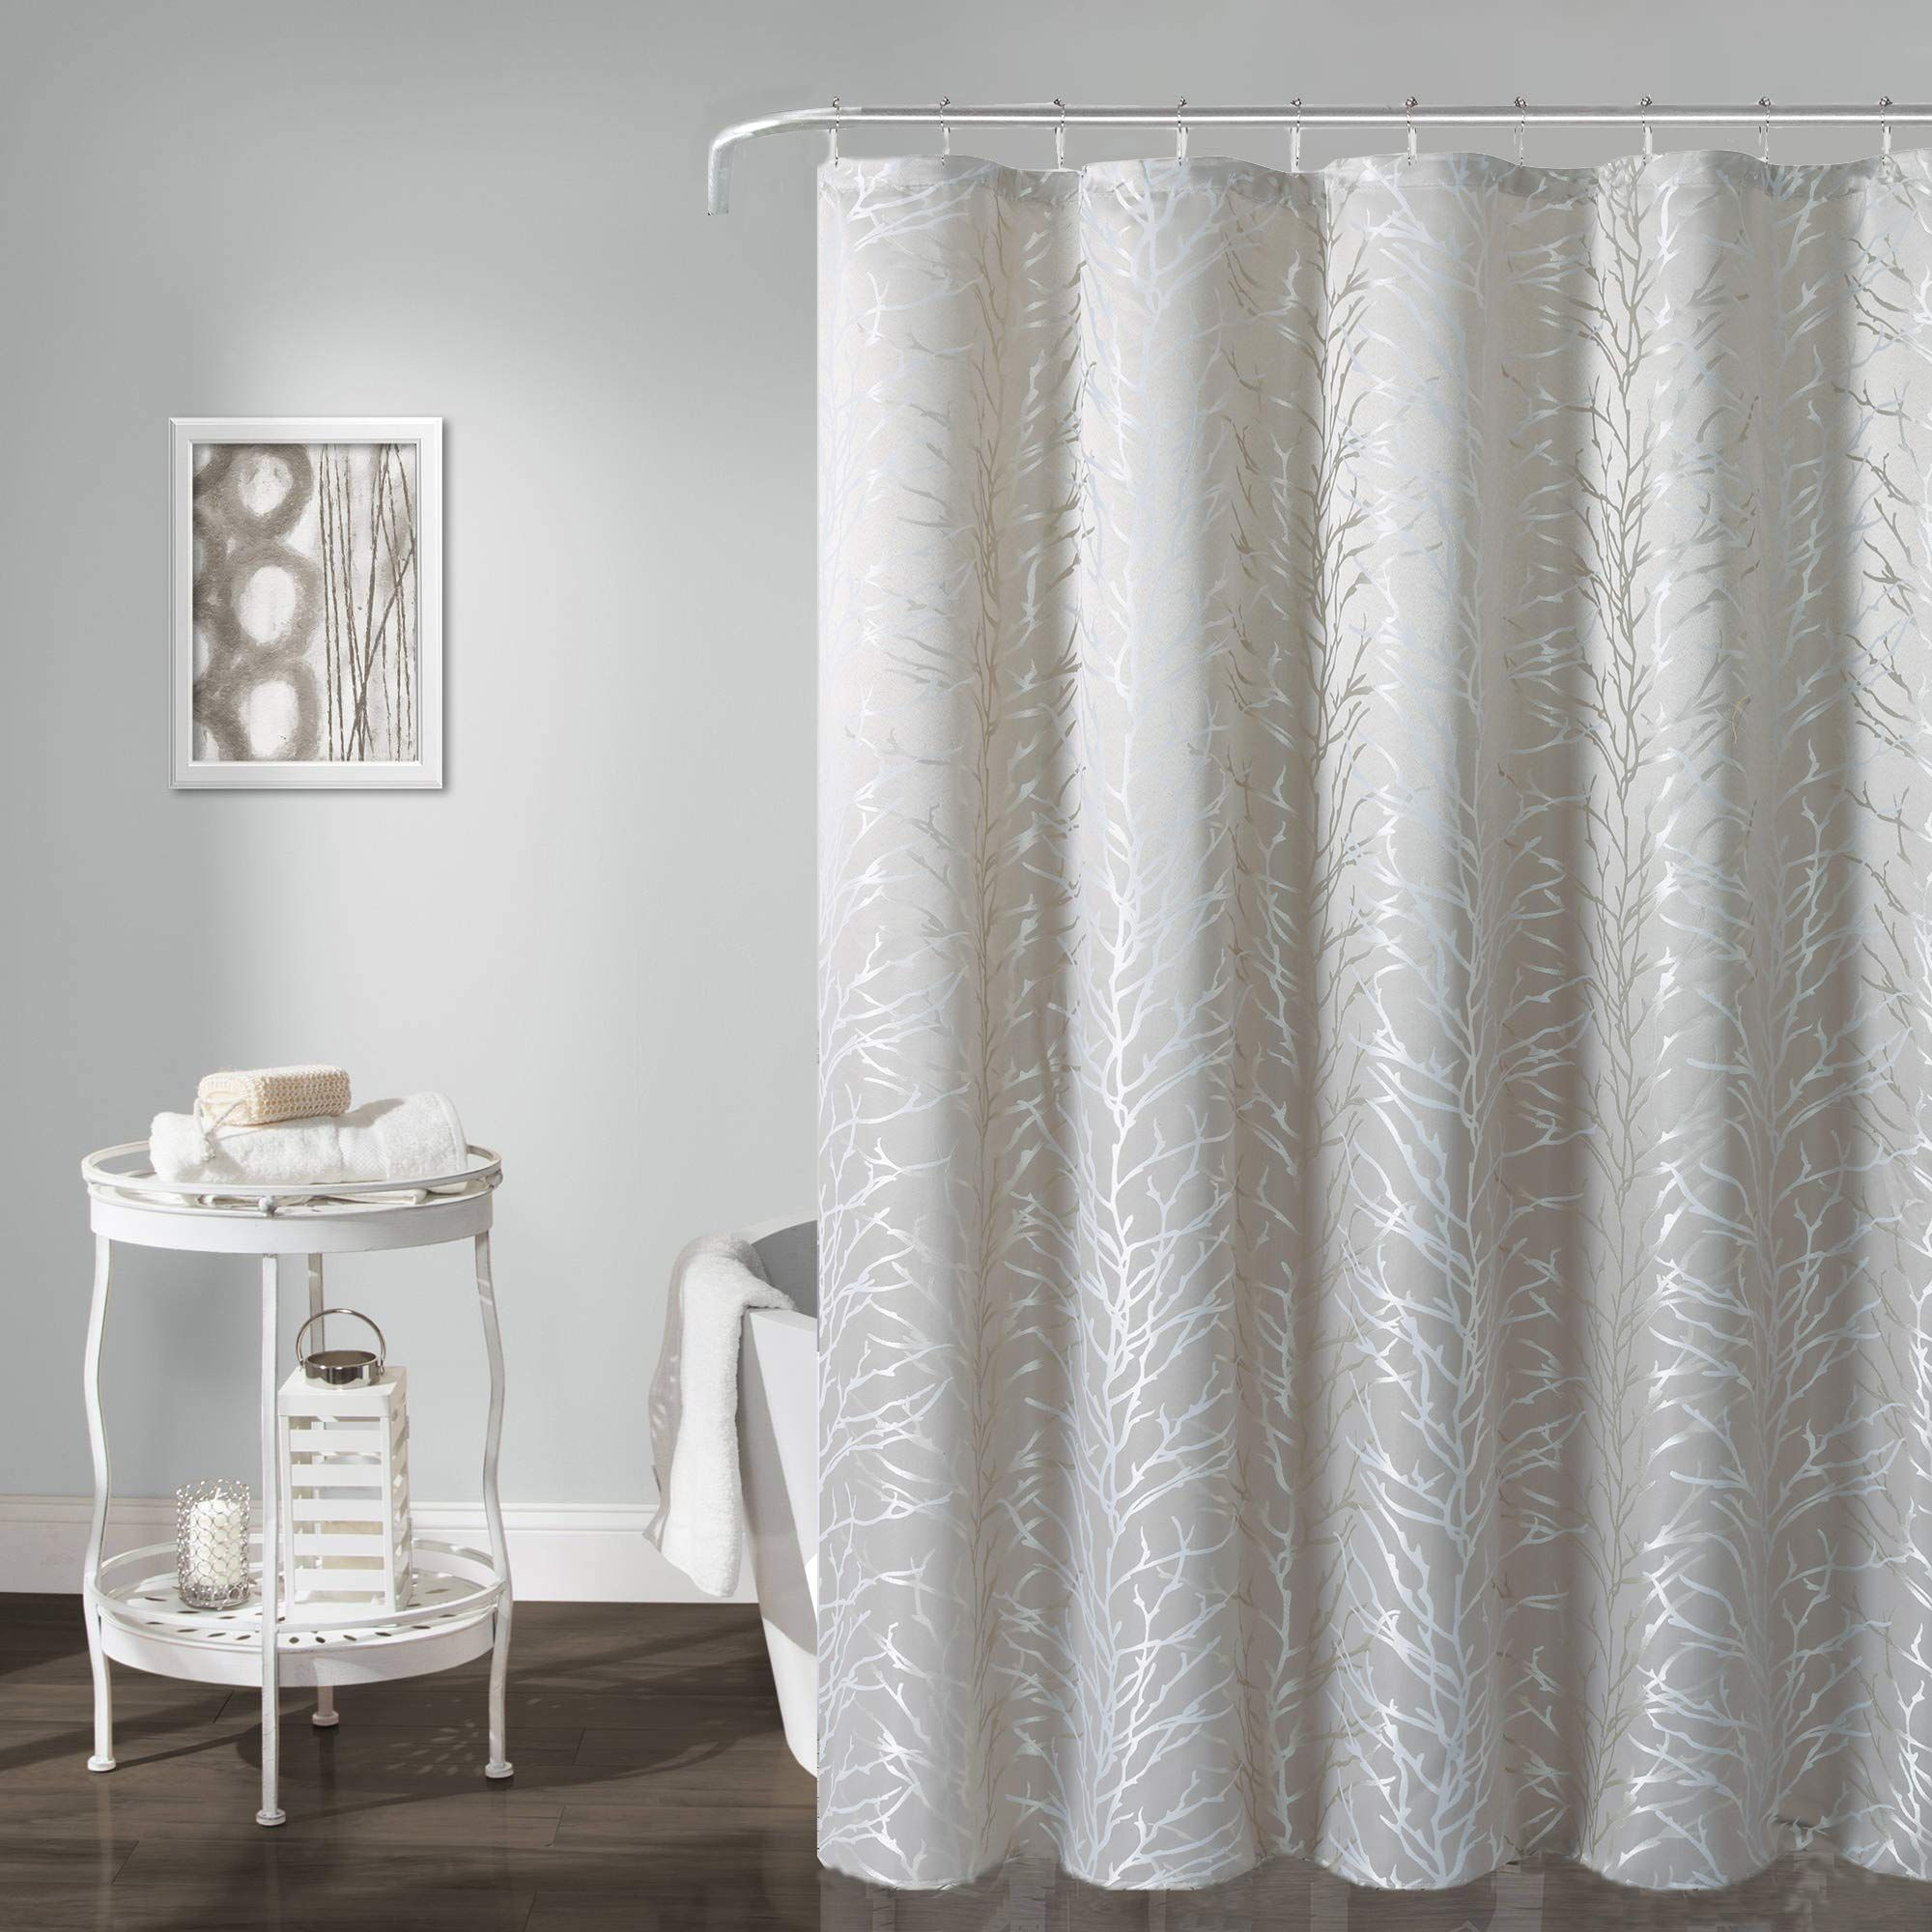 Aniello Tree Shower Curtain Tan With Beige Branch Pattern Water Resistant Stylish Amp Dec In 2020 Stylish